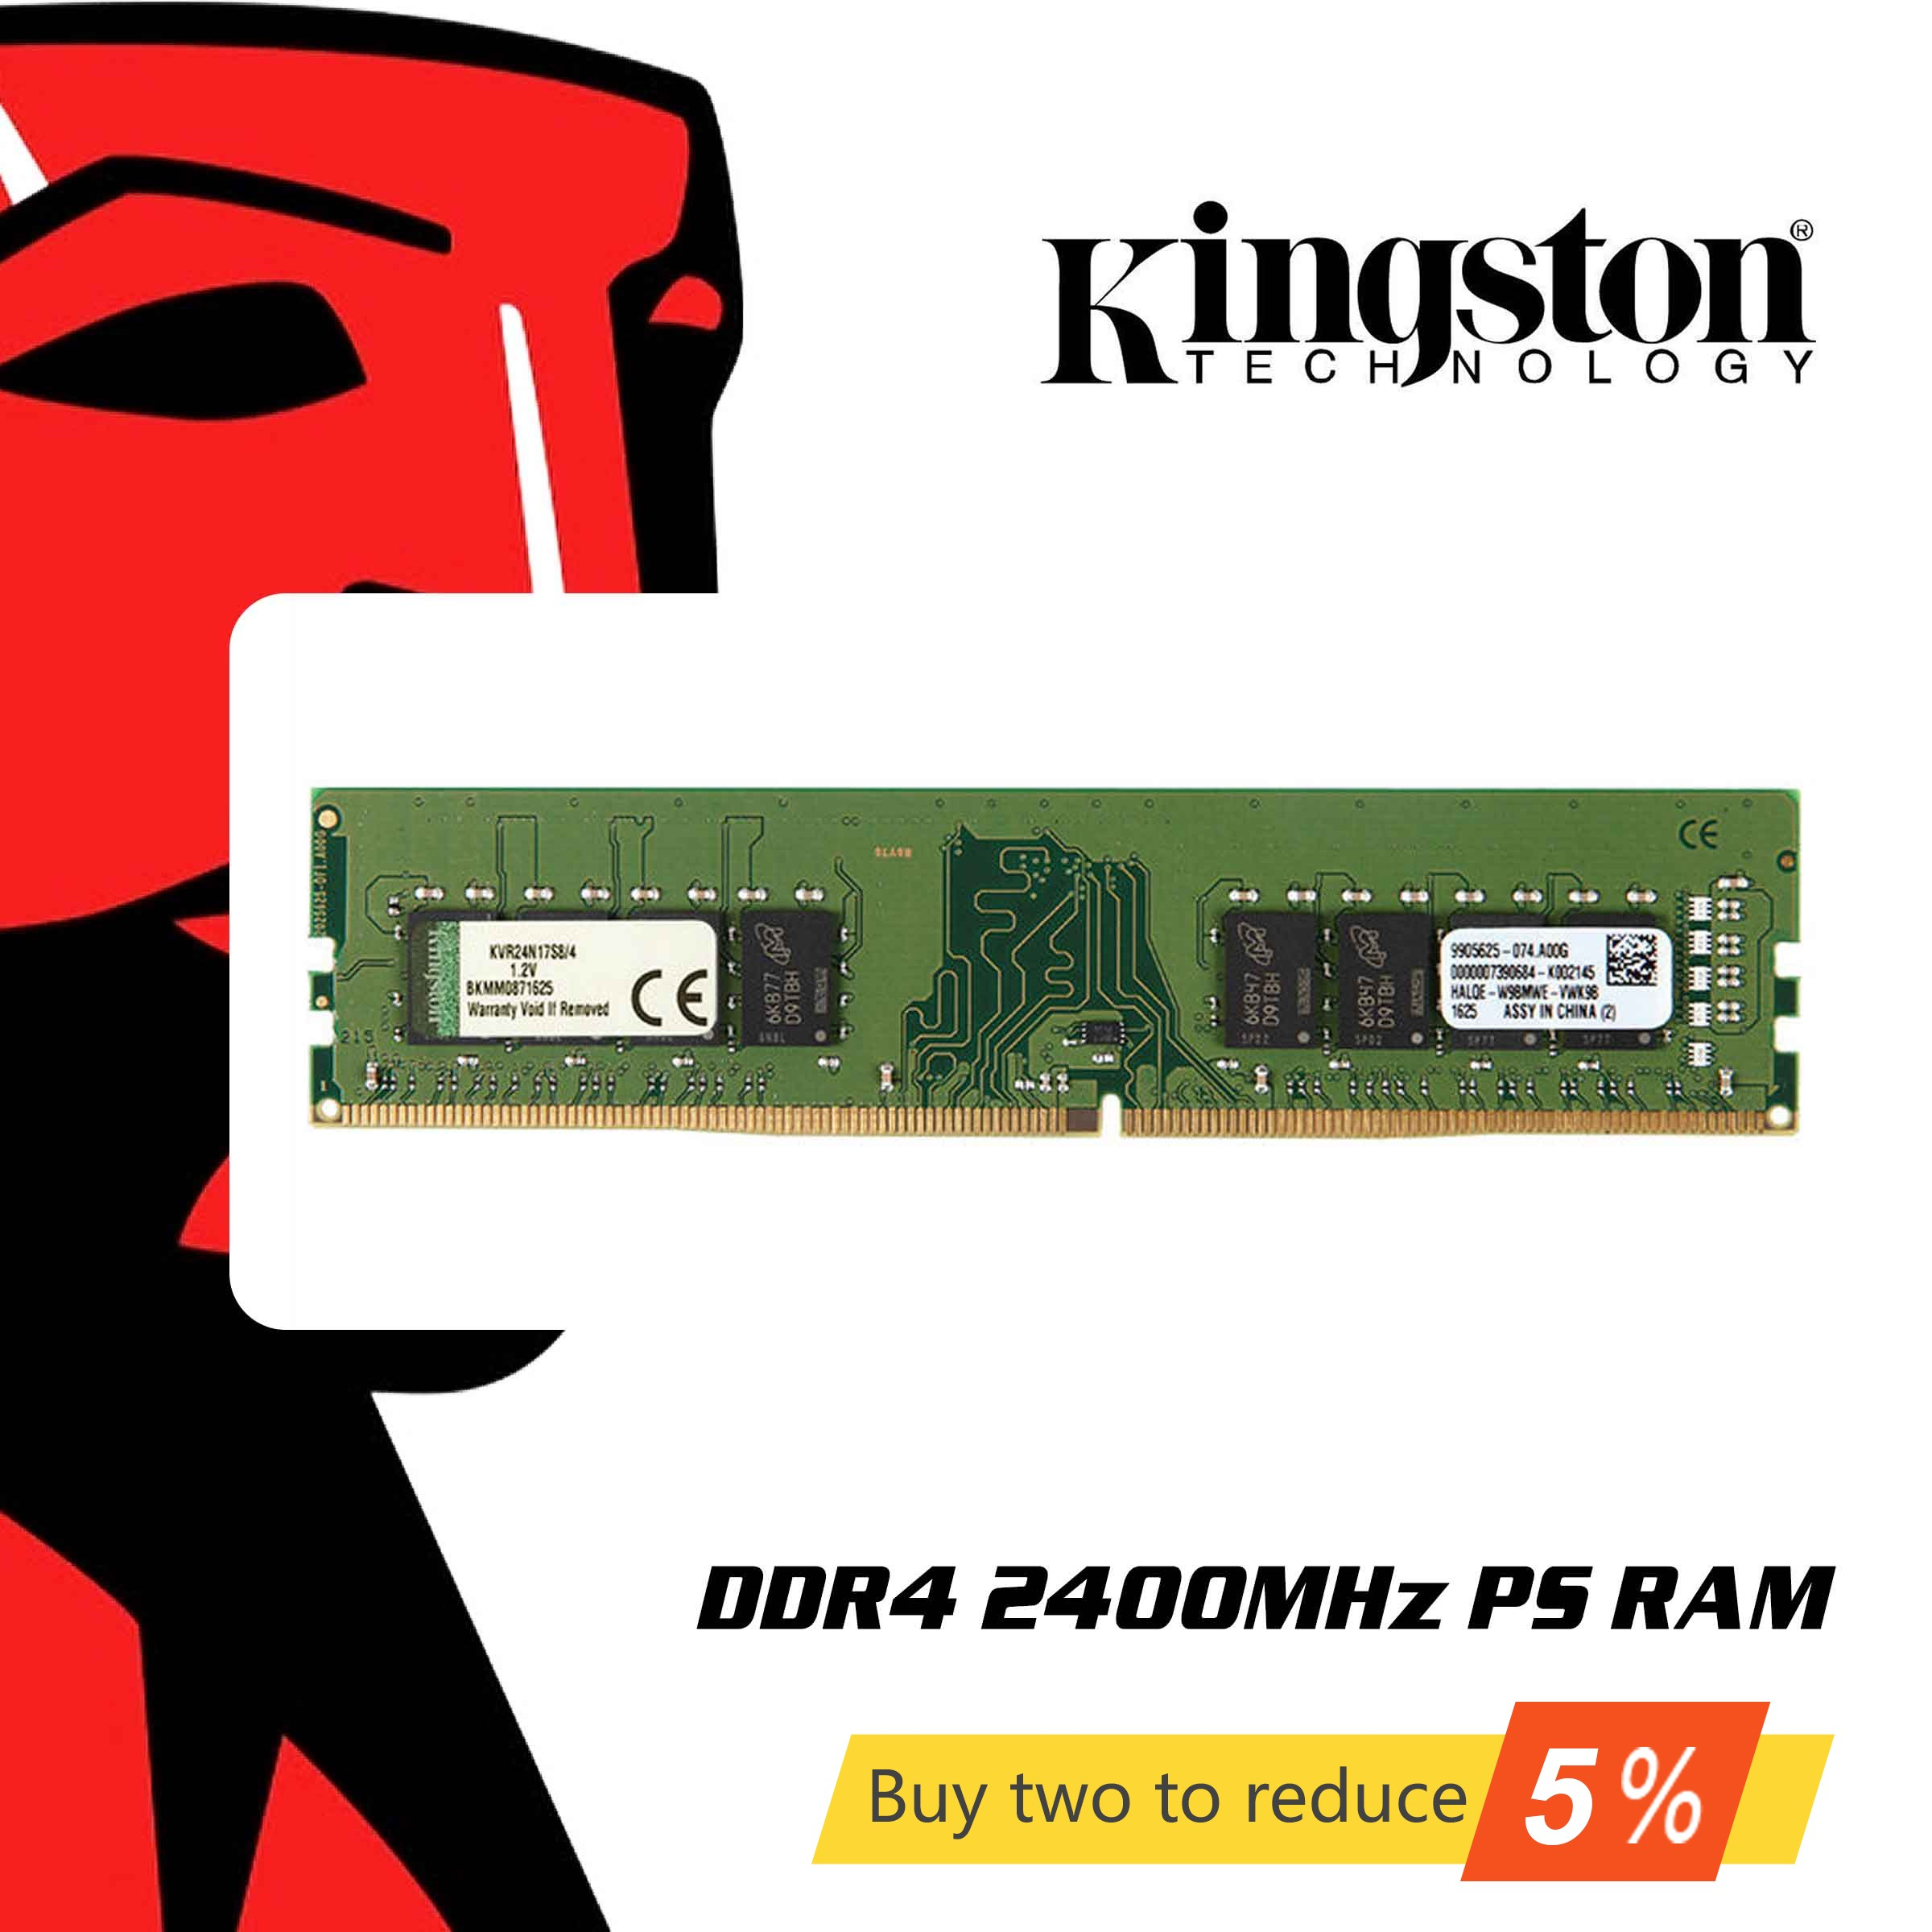 Original Kingston <font><b>DDR4</b></font> <font><b>RAM</b></font> Speicher 8GB 4GB <font><b>16GB</b></font> 2400Mhz Memoria DDR 4 8 16 Gigabyte Gigs sticks für Desktop-PC Notebook <font><b>Laptop</b></font> image